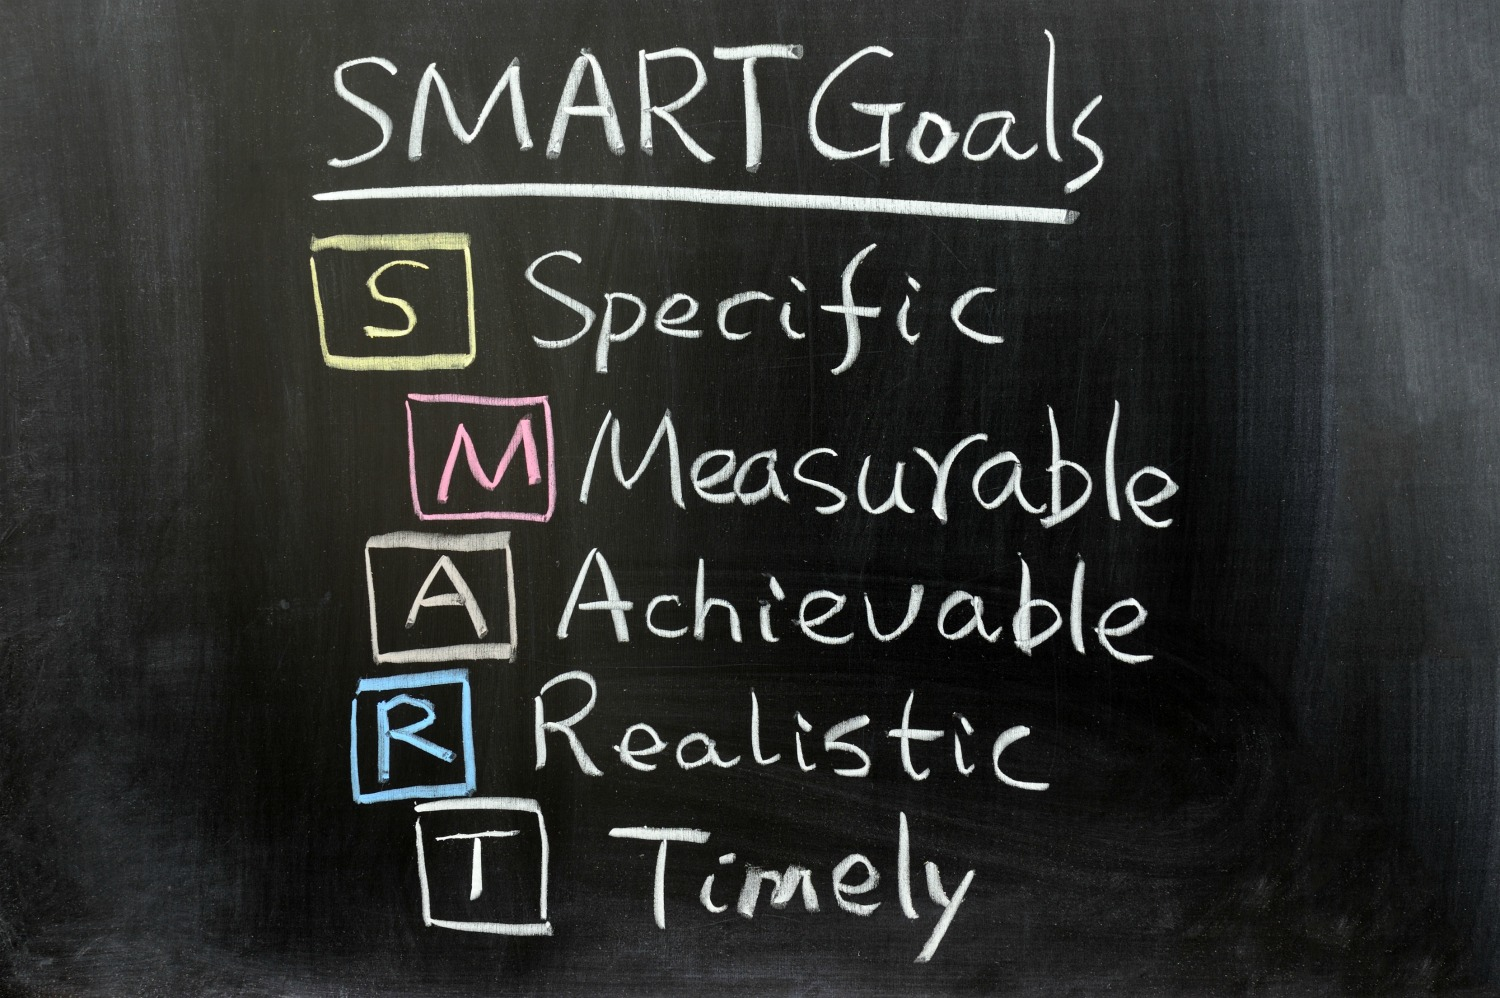 SMART Goals Specific Measurable Achievable Realistic Timely